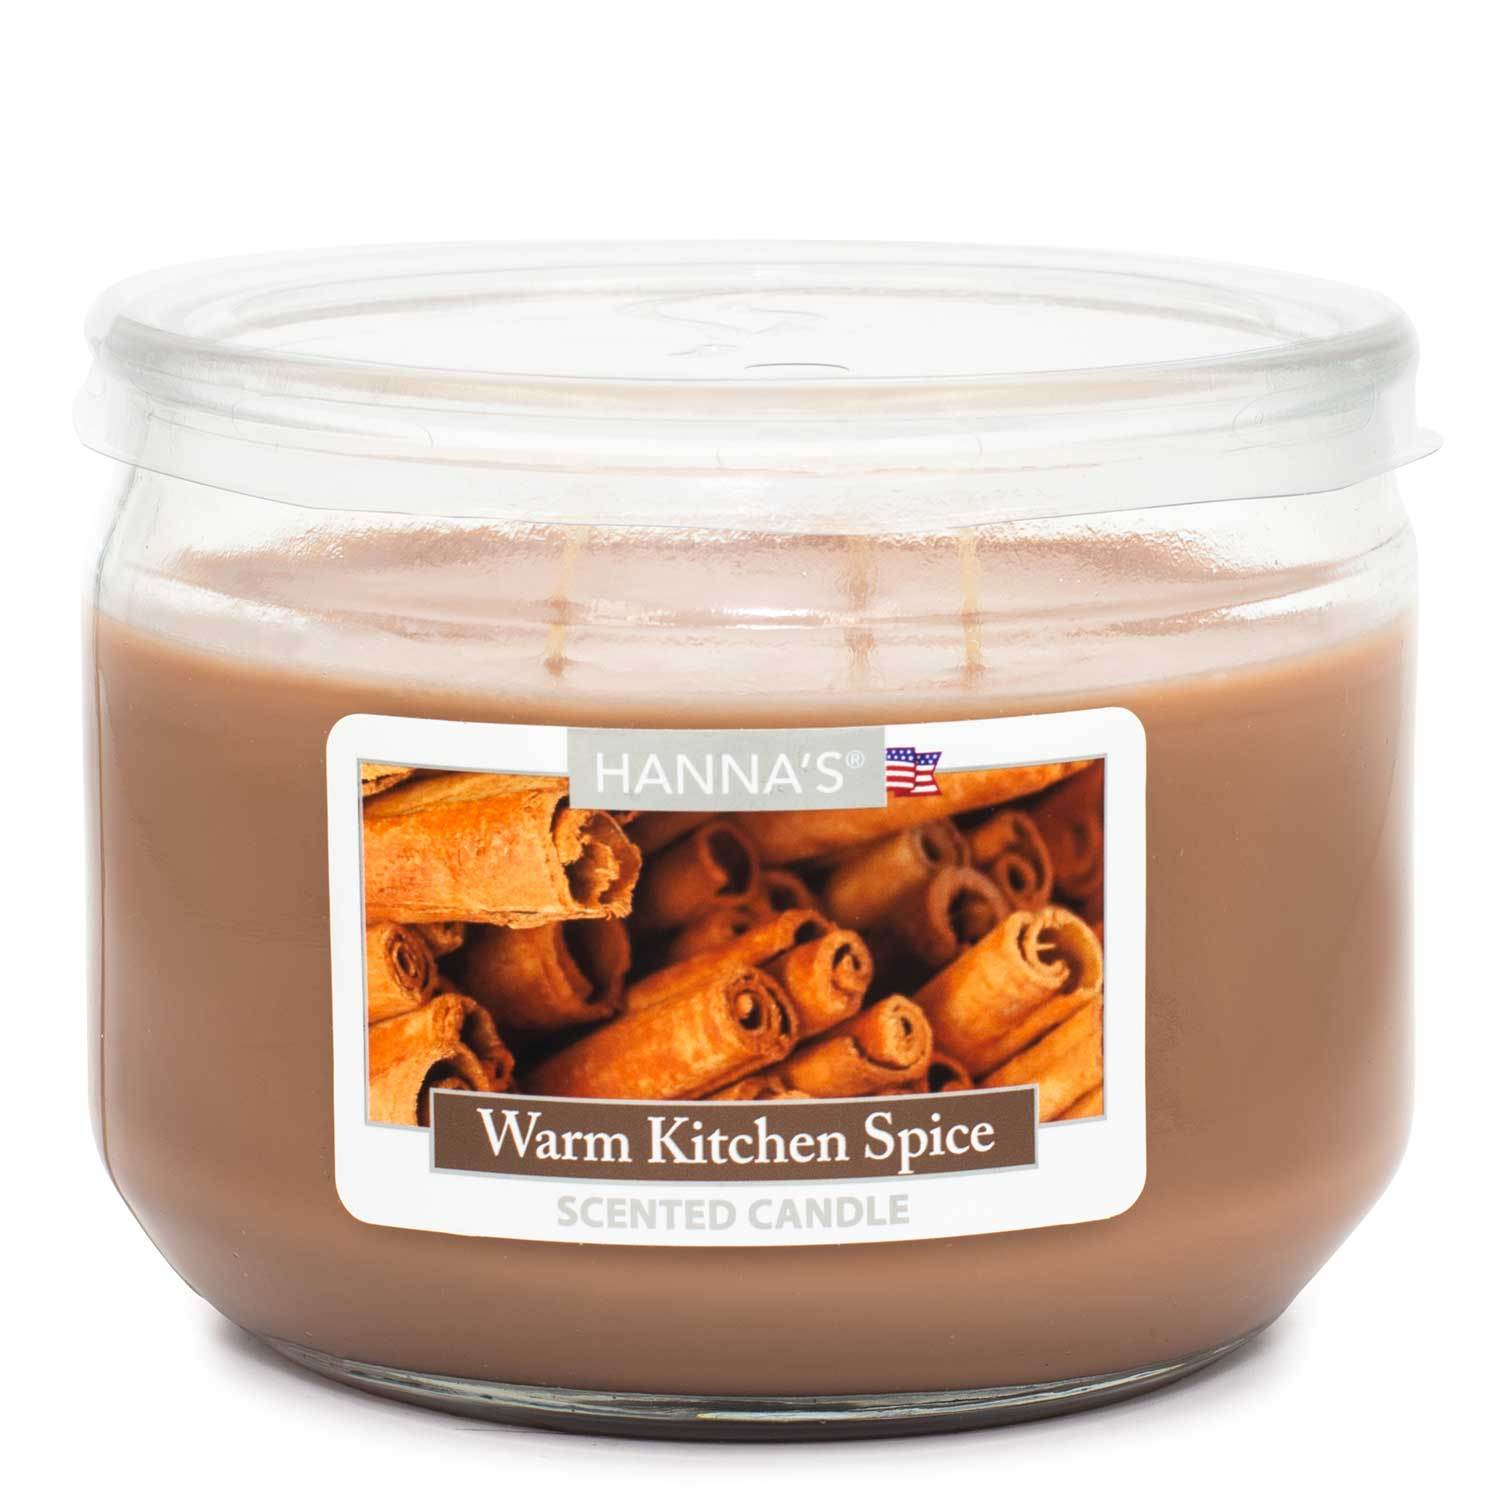 Warm Kitchen Spice Scented 3 wick Candle Candles Candlemart.com $ 7.99